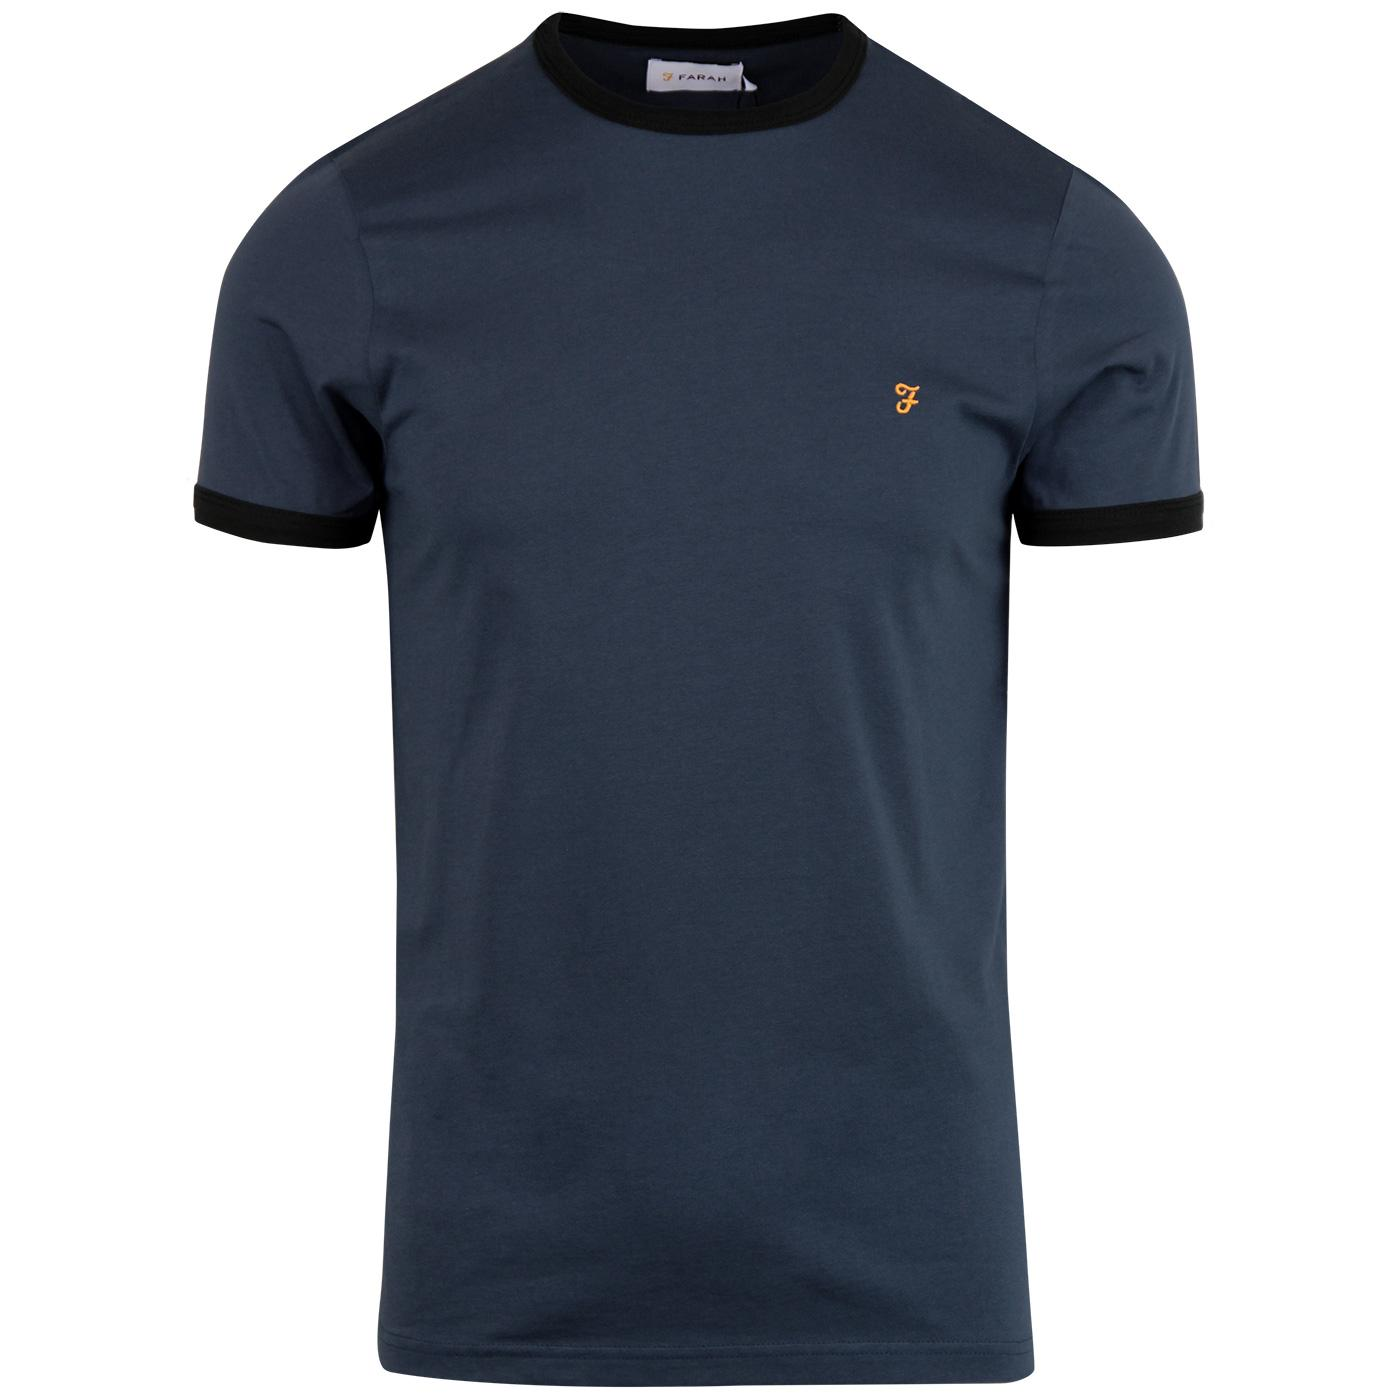 Groves FARAH Retro Mod Ringer T-shirt - Bobby Blue